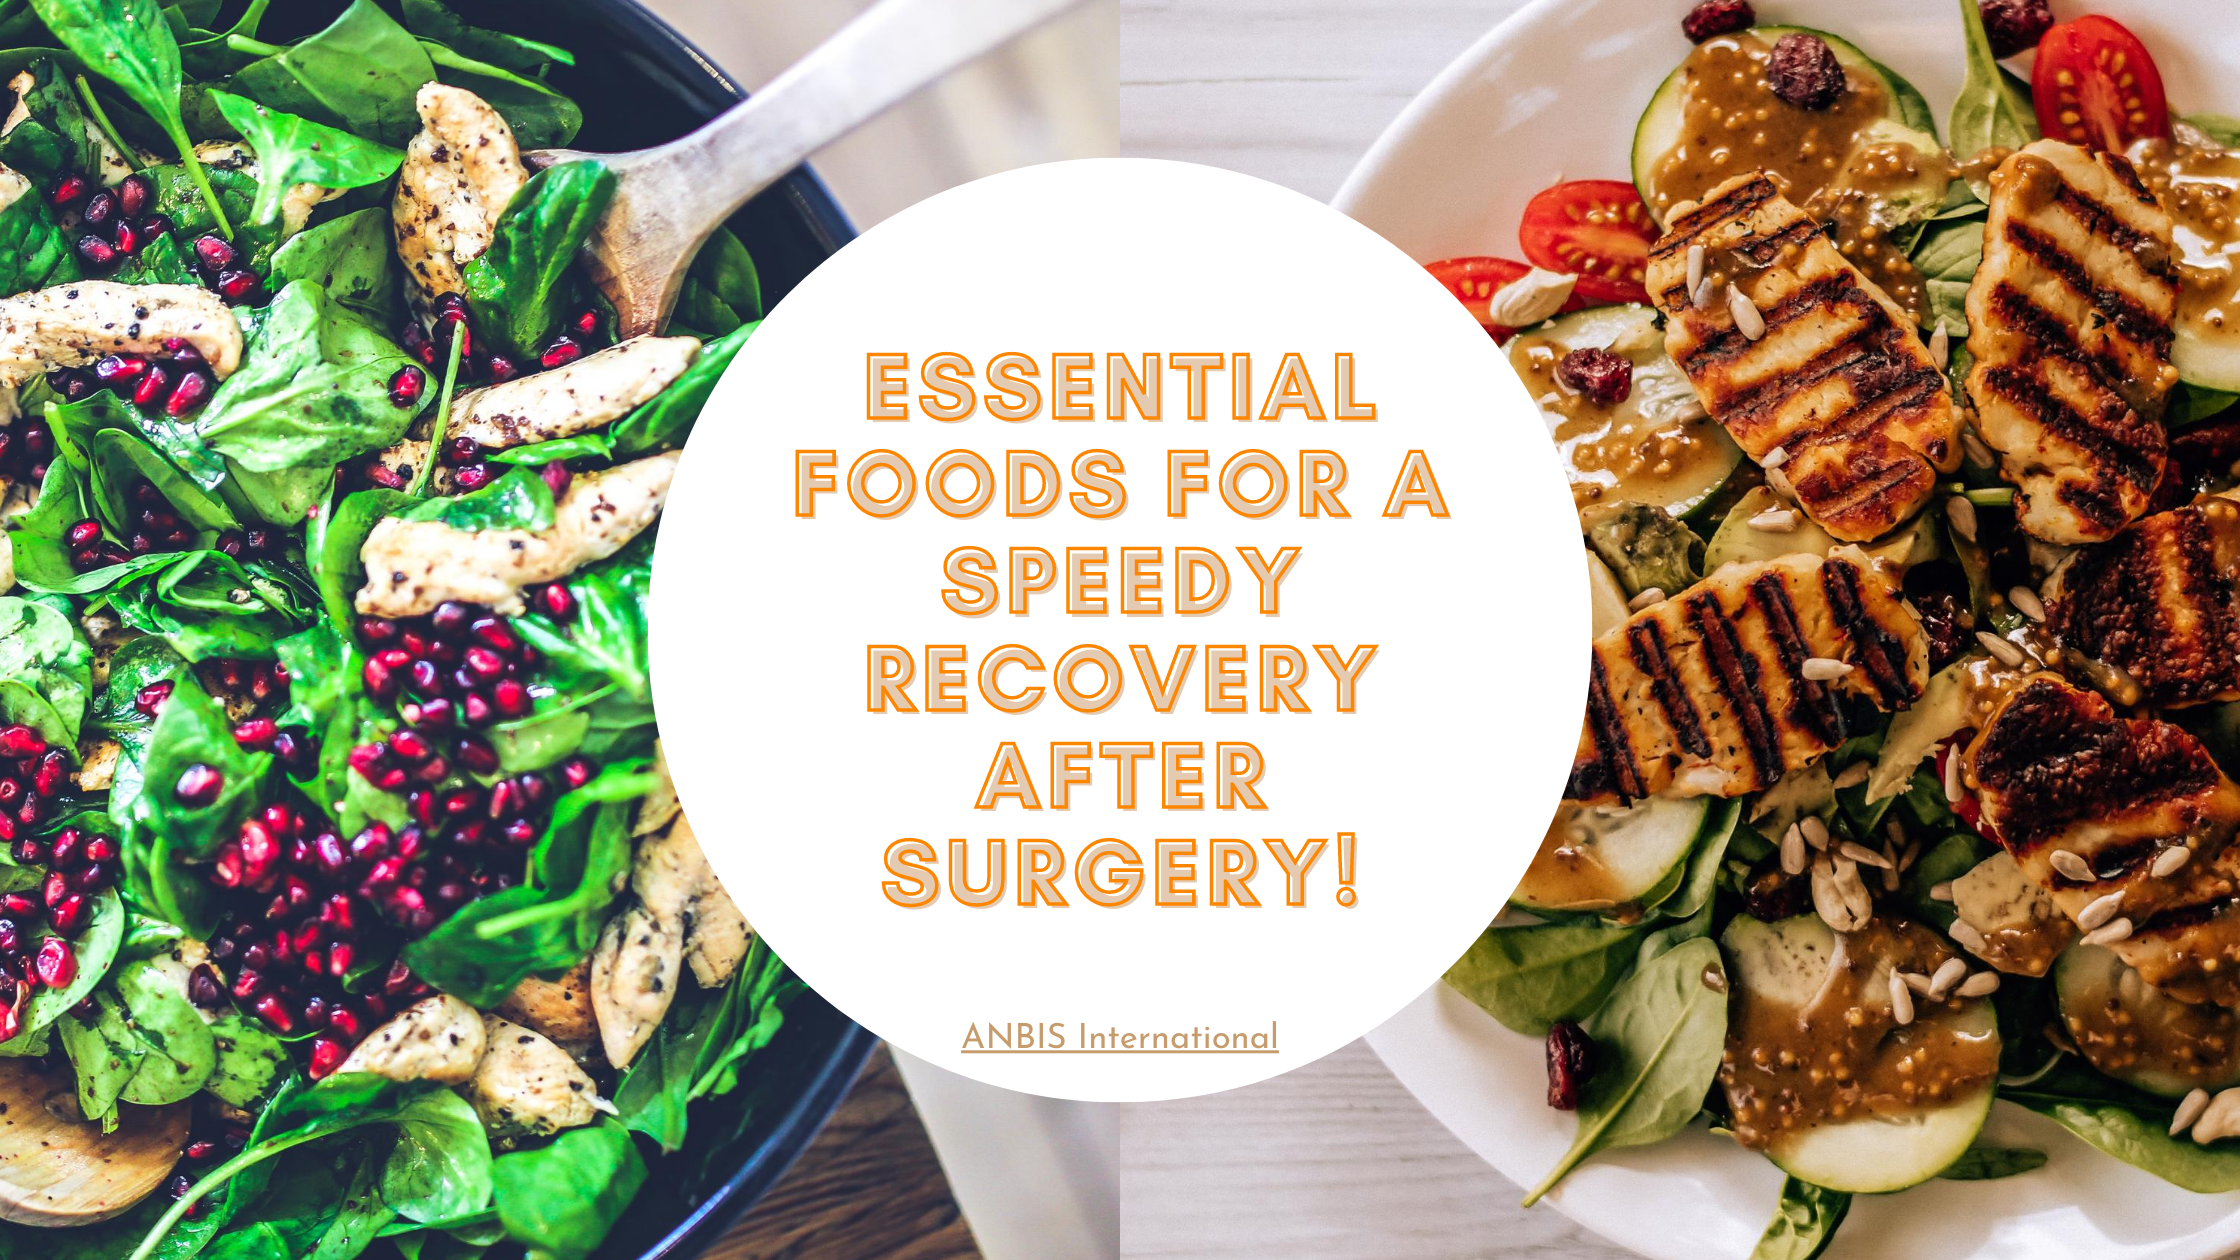 Essential foods for a speedy recovery after Surgery! | ANBIS International